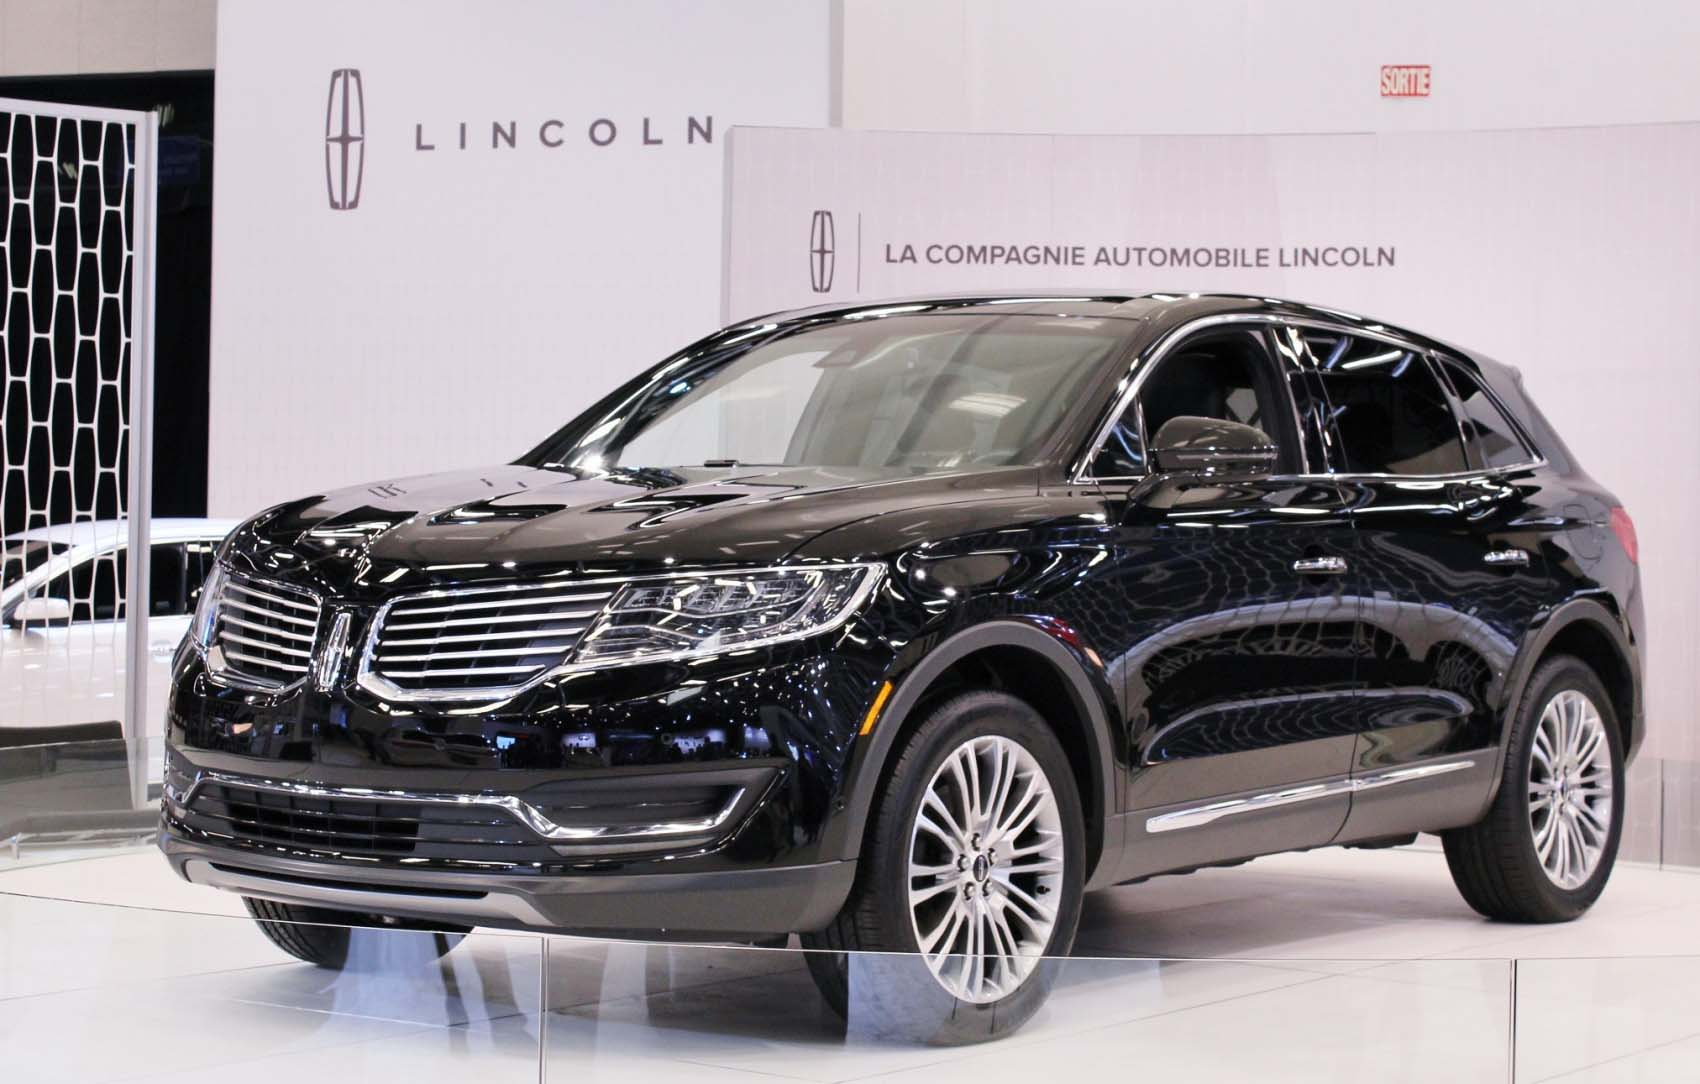 The New 2016 Lincoln MKX exterior black color hd wallpaper